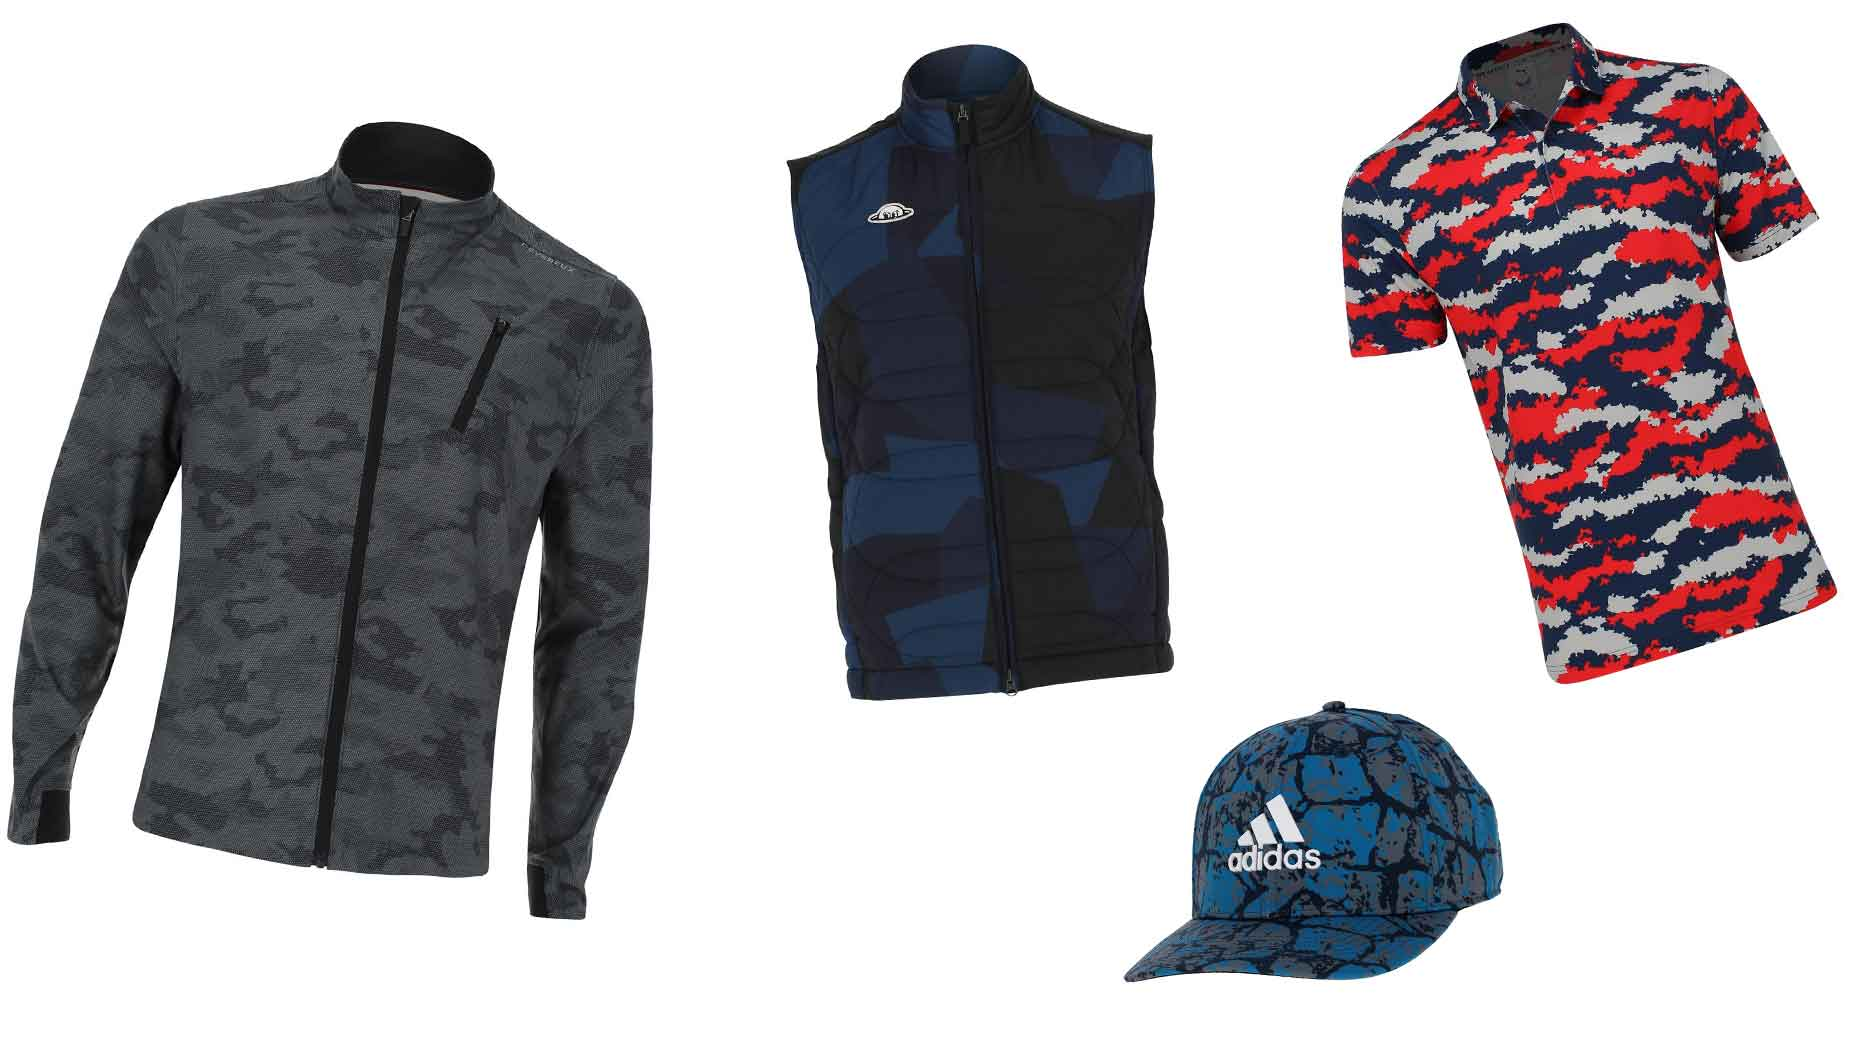 A collection of camouflage-printed apparel